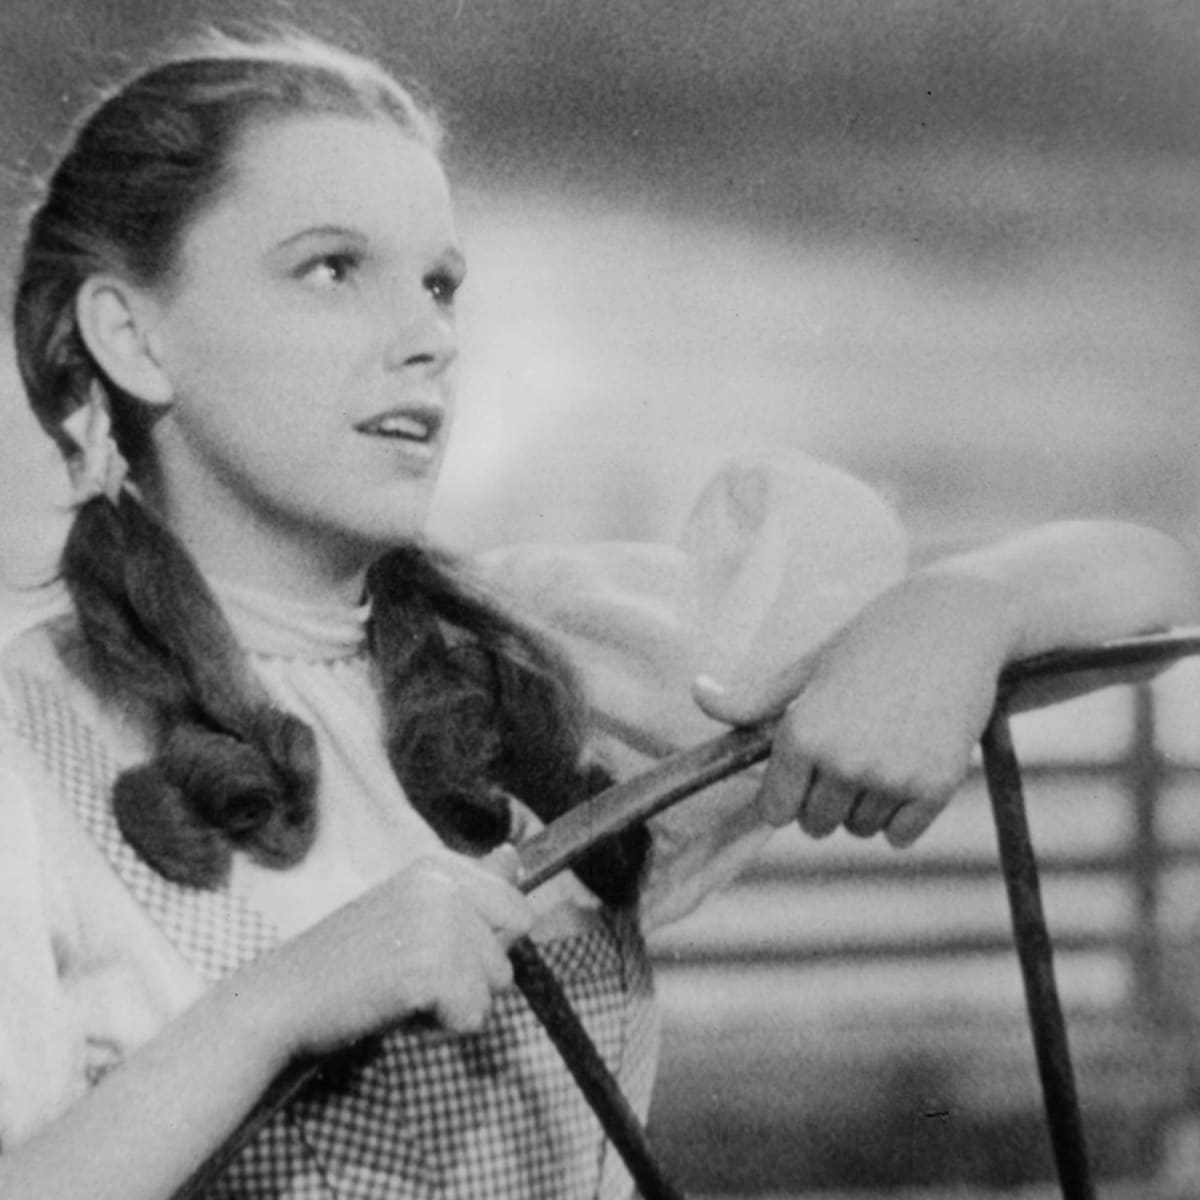 Judy Garland Was Put On A Strict Diet And Encouraged To Take Pep Pills While Filming The Wizard Of Oz Biography